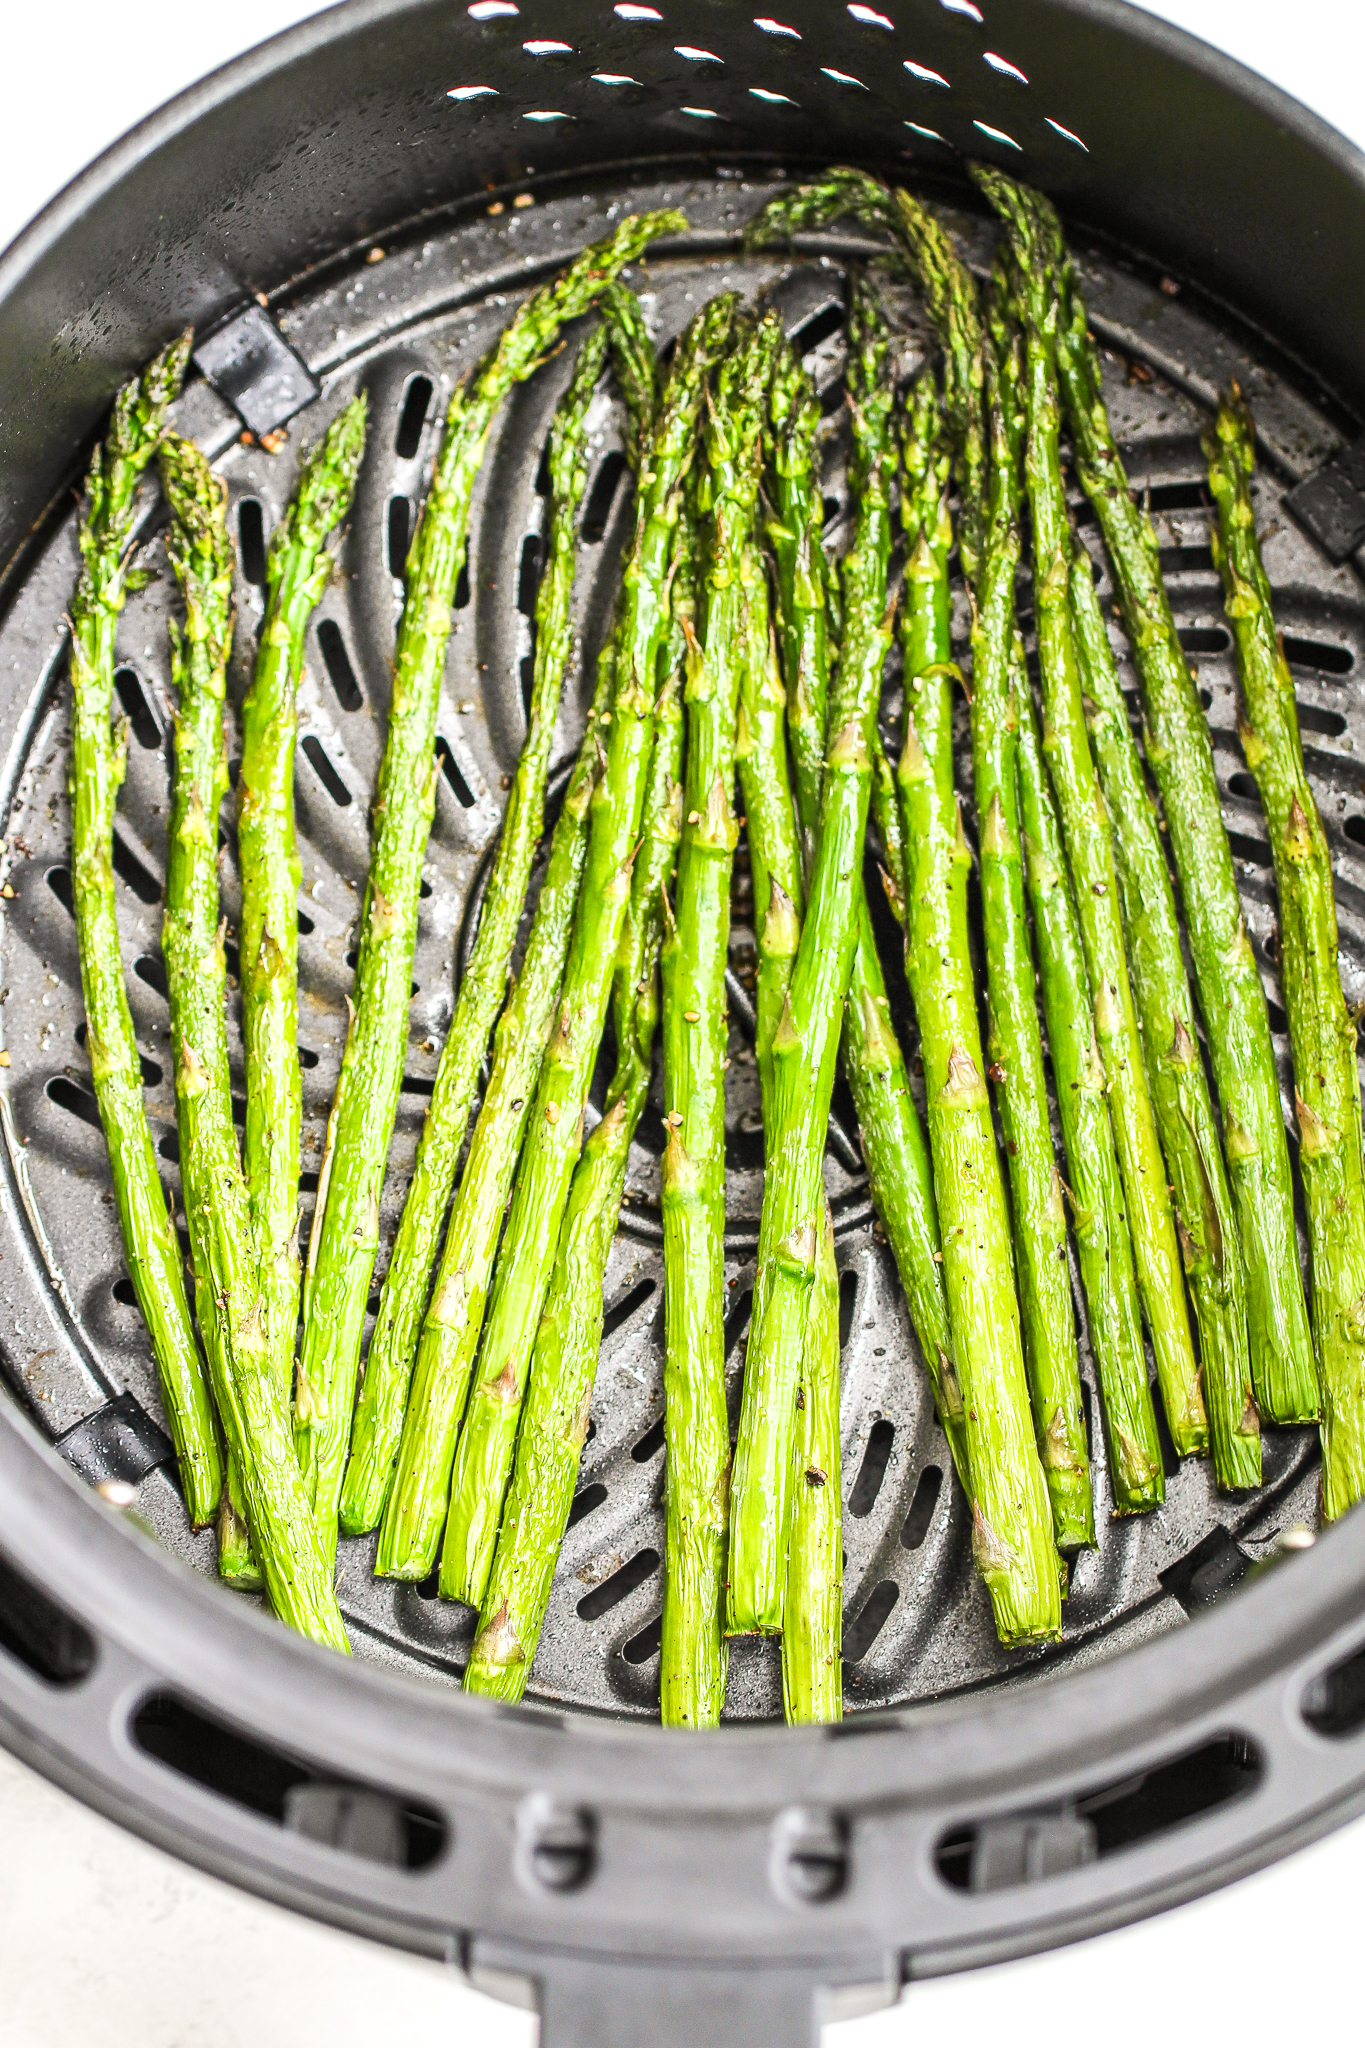 asparagus in an air fryer basket tossed with cooking spray and salt & pepper